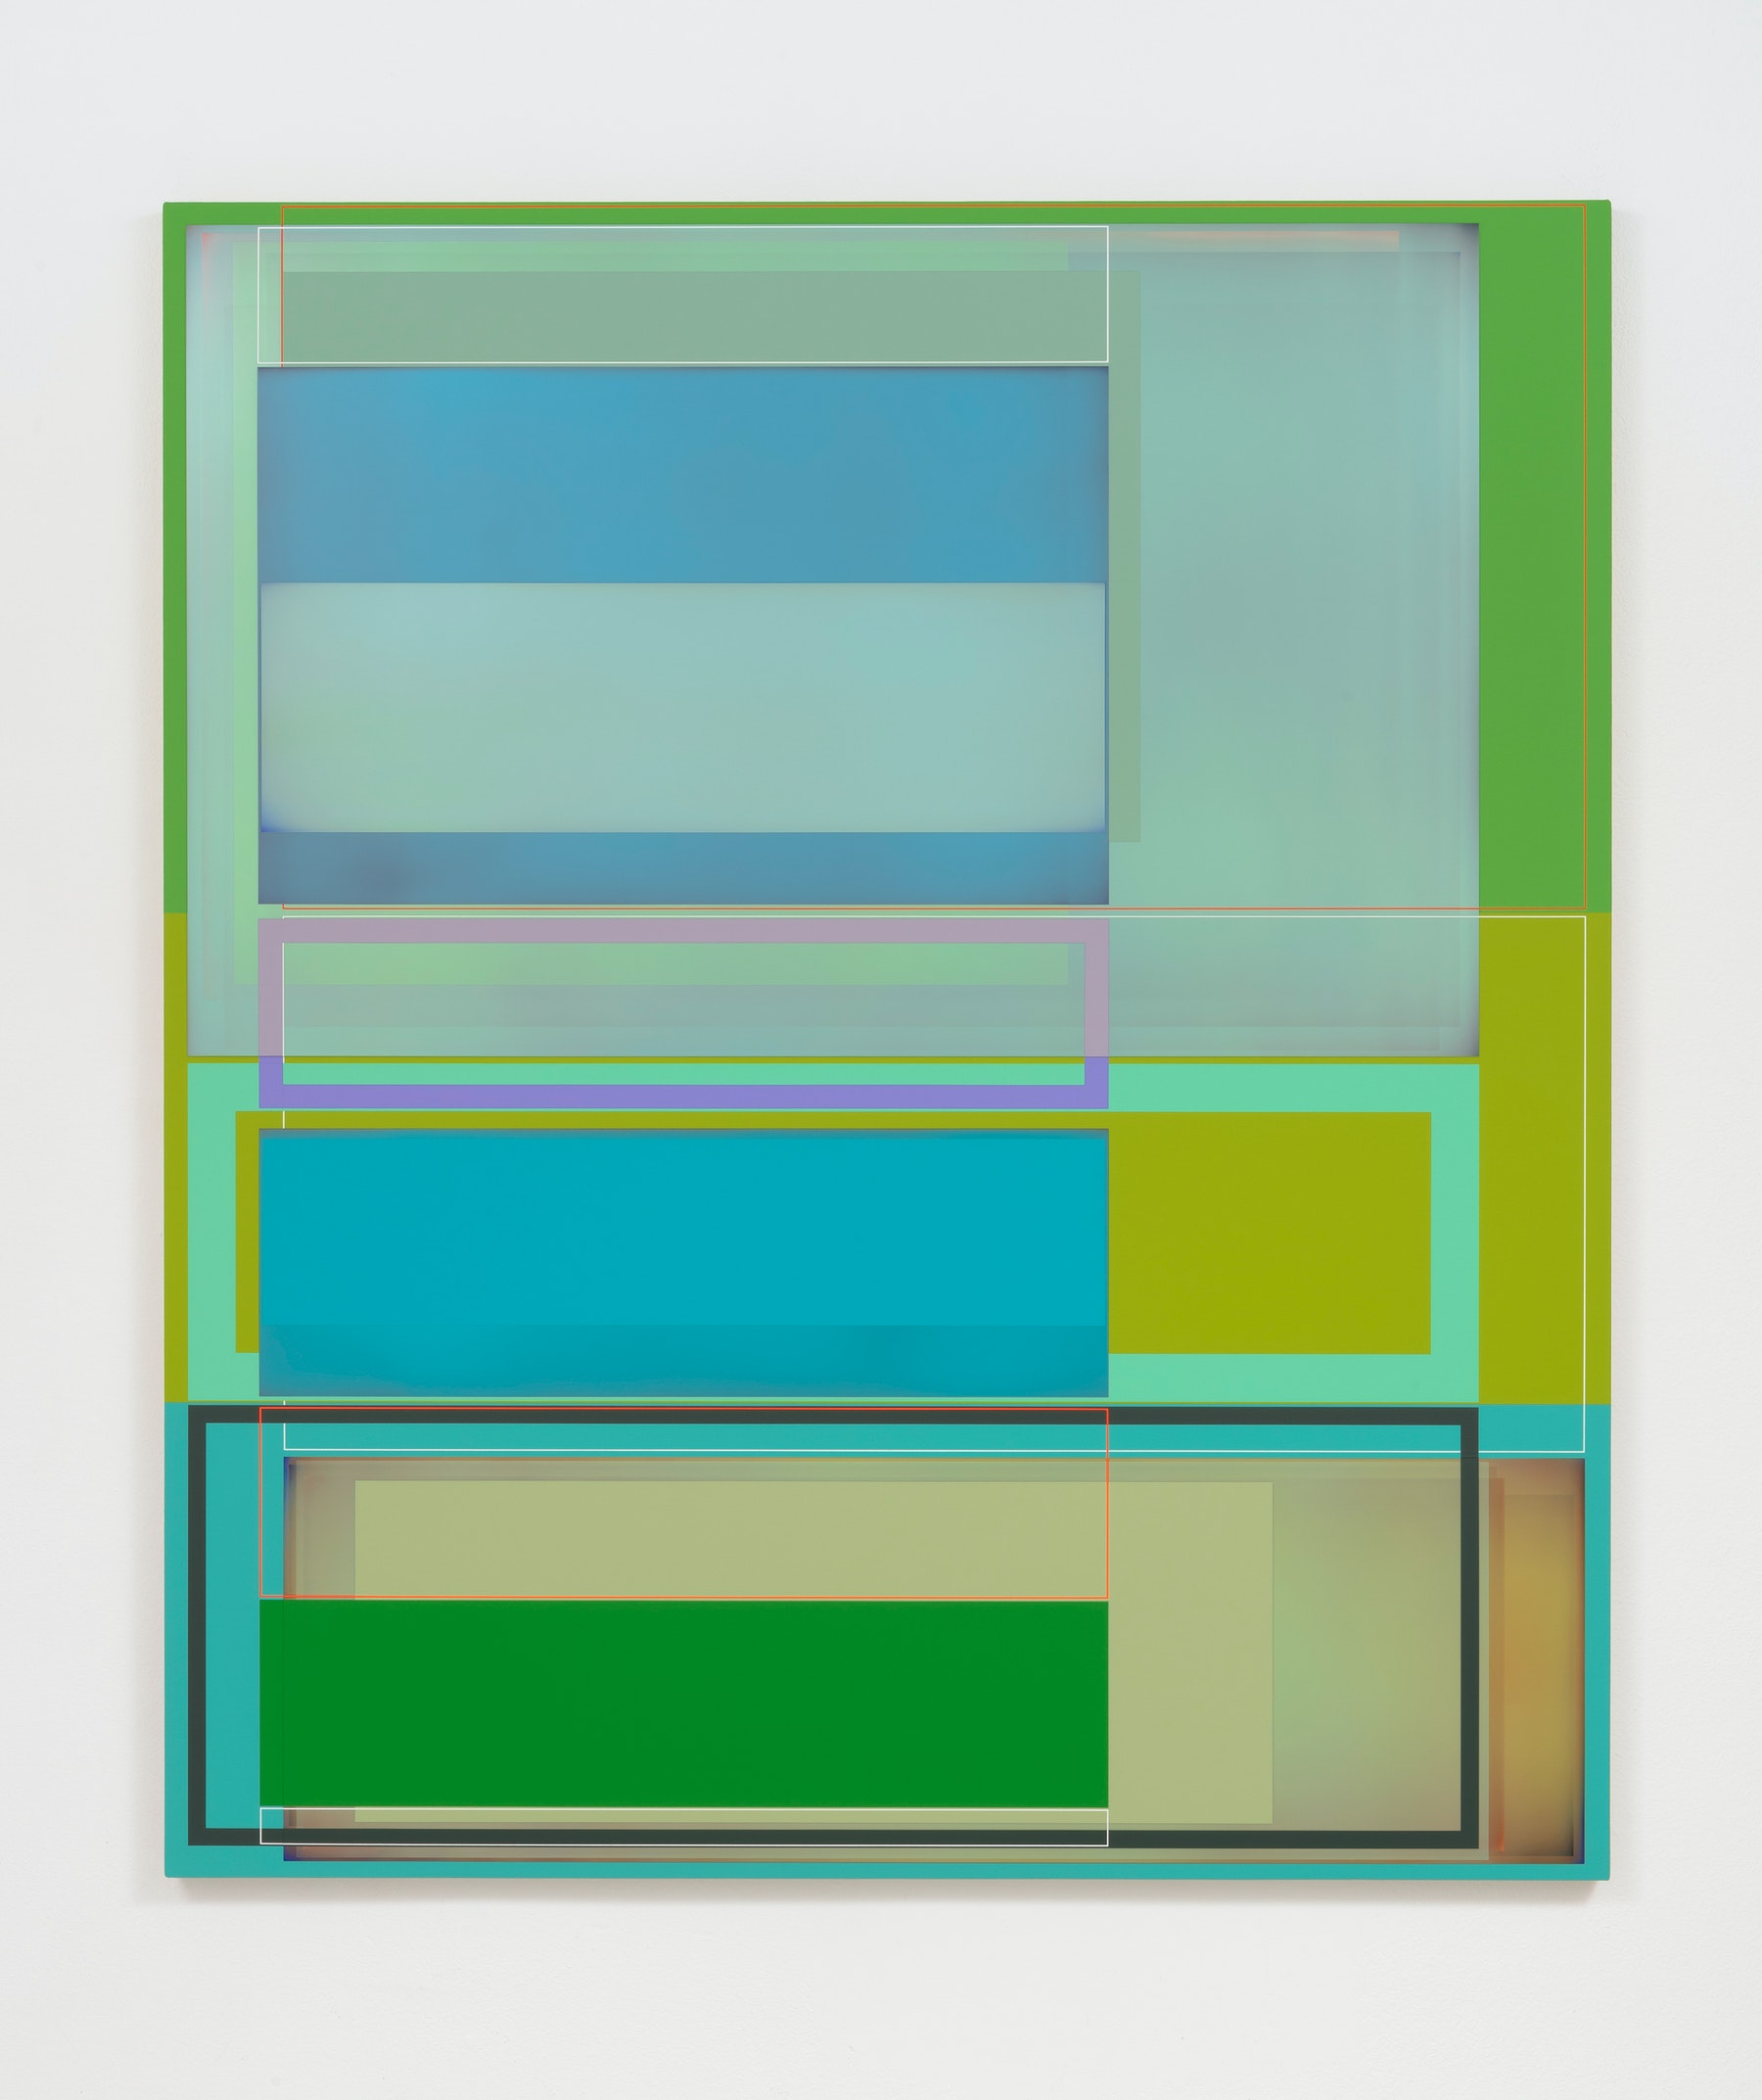 """Patrick Wilson """"Natural Selection,"""" 2020 Acrylic on canvas 66"""" x 57"""" [HxW] (167.64 x 144.78 cm) Inventory #WIL575 Courtesy of the artist and Vielmetter Los Angeles Photo credit: Robert Wedemeyer"""